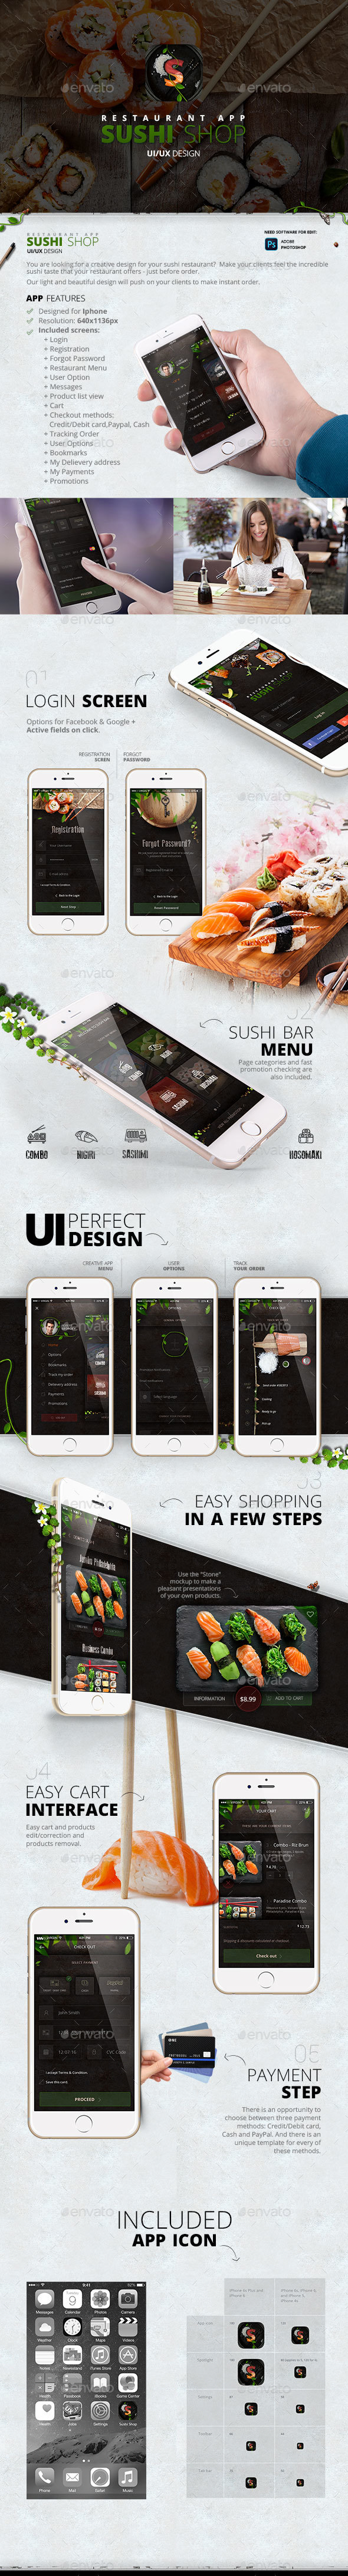 Sushi Shop Restaurant – App design (User Interfaces)